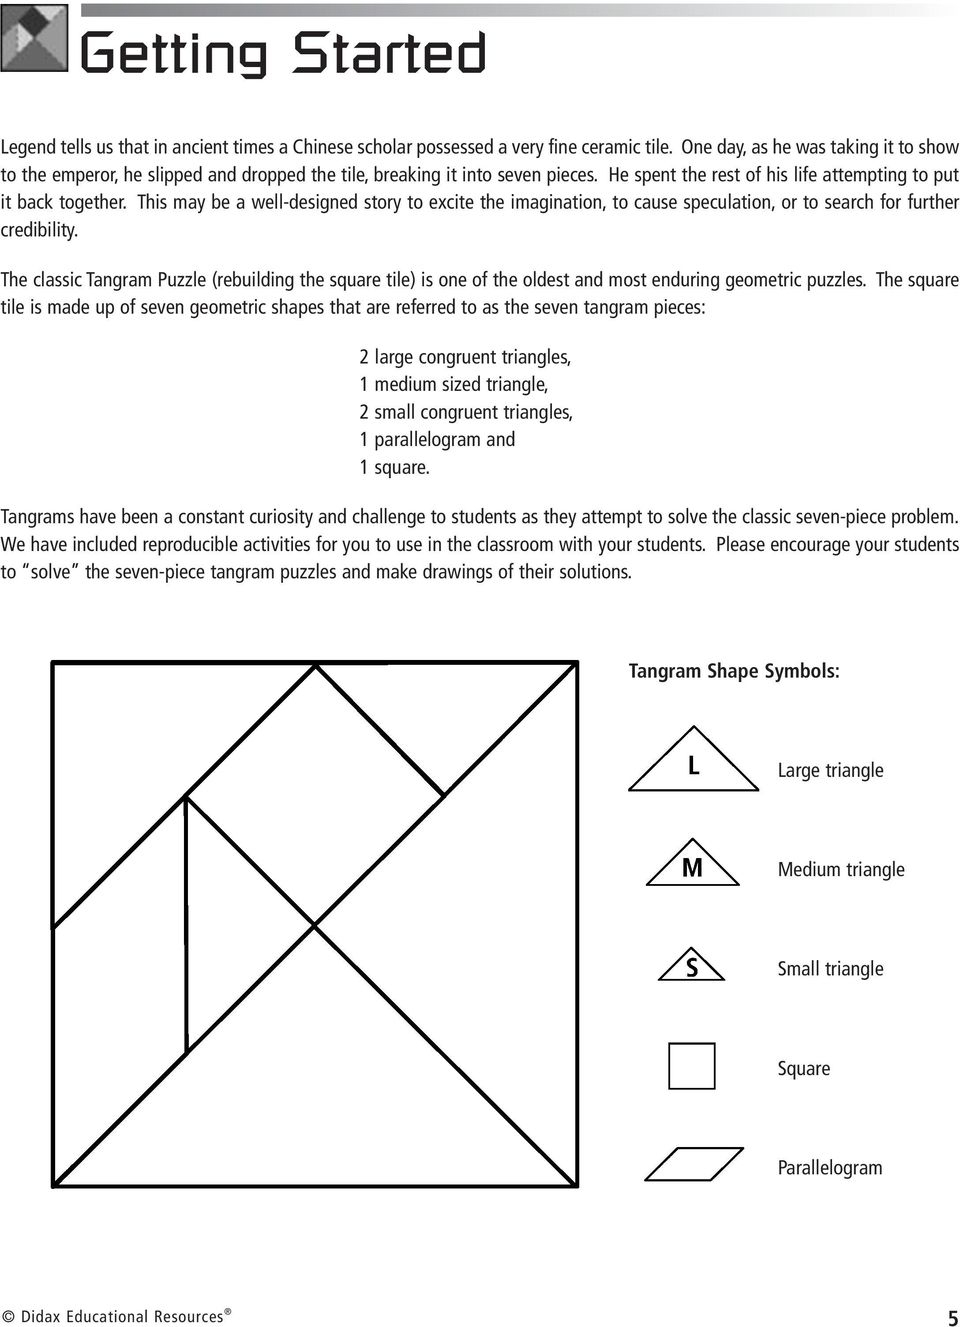 Fractions Tangrams With. Larry Ecklund - Pdf Free Download intérieur Tangram Cycle 3